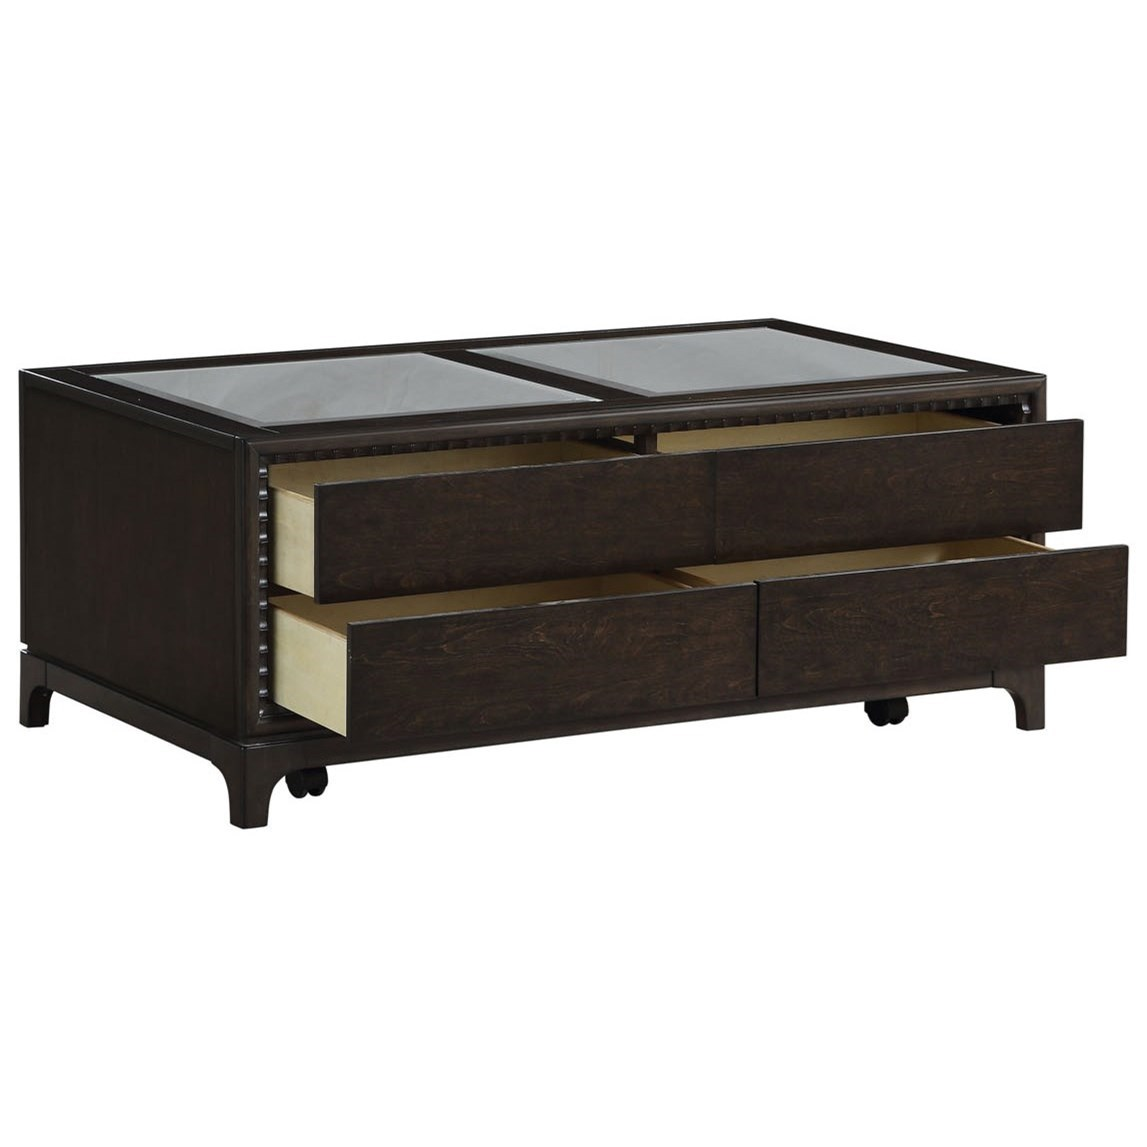 Adelynn Coffee Table by Acme Furniture at Carolina Direct